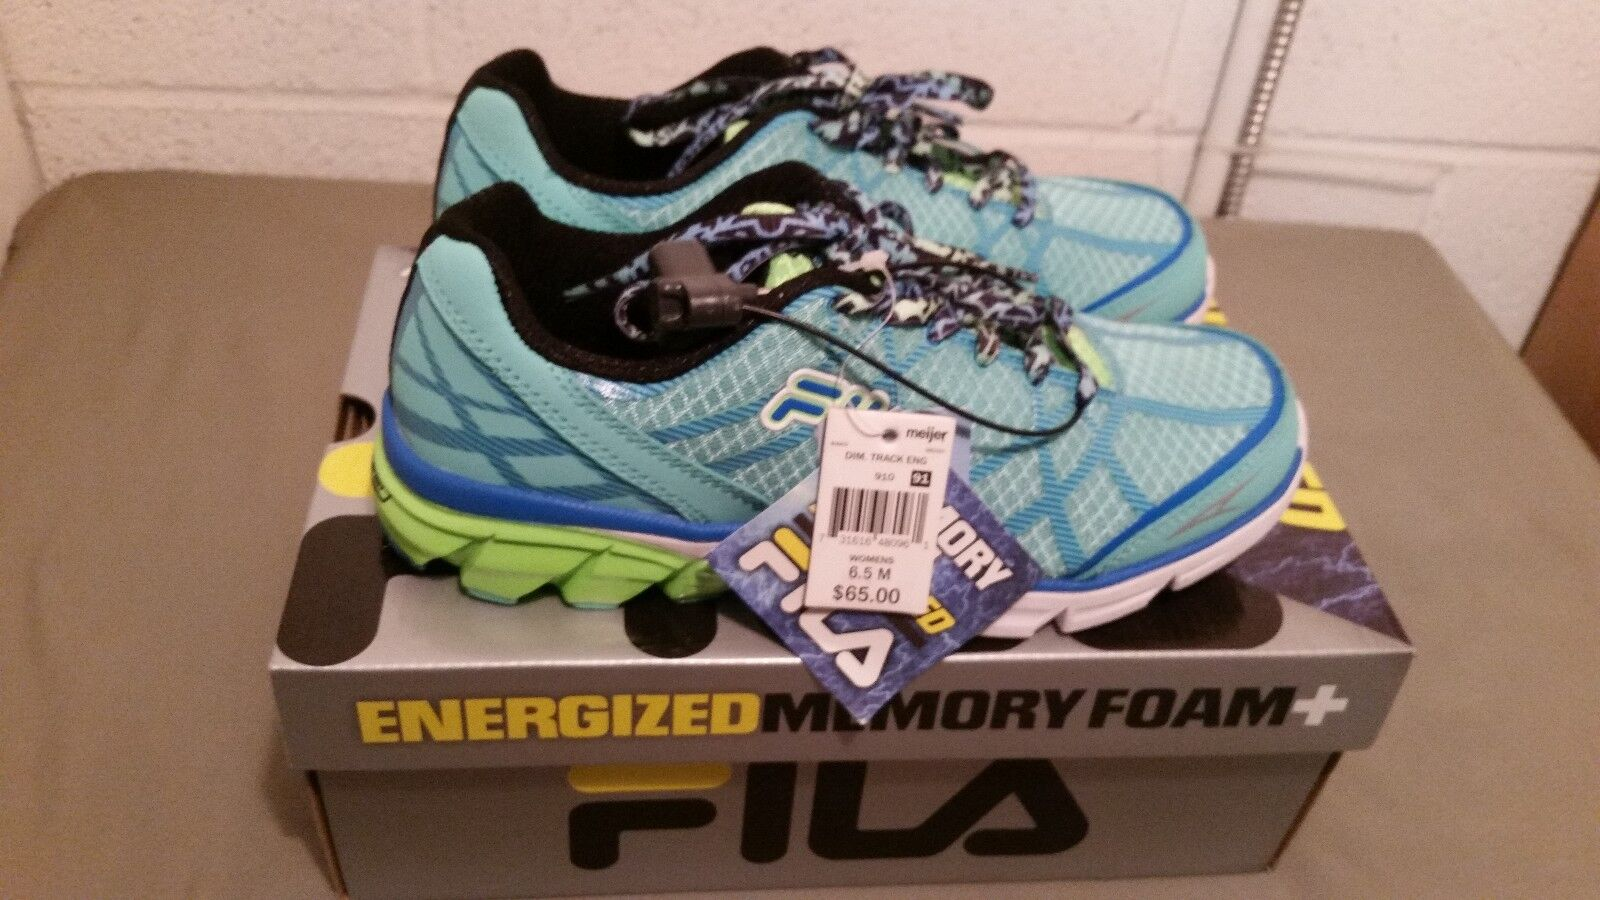 New FILA Women's Gym Athletic Shoes Sneakers Coolmax Memory Foam Cheap and beautiful fashion